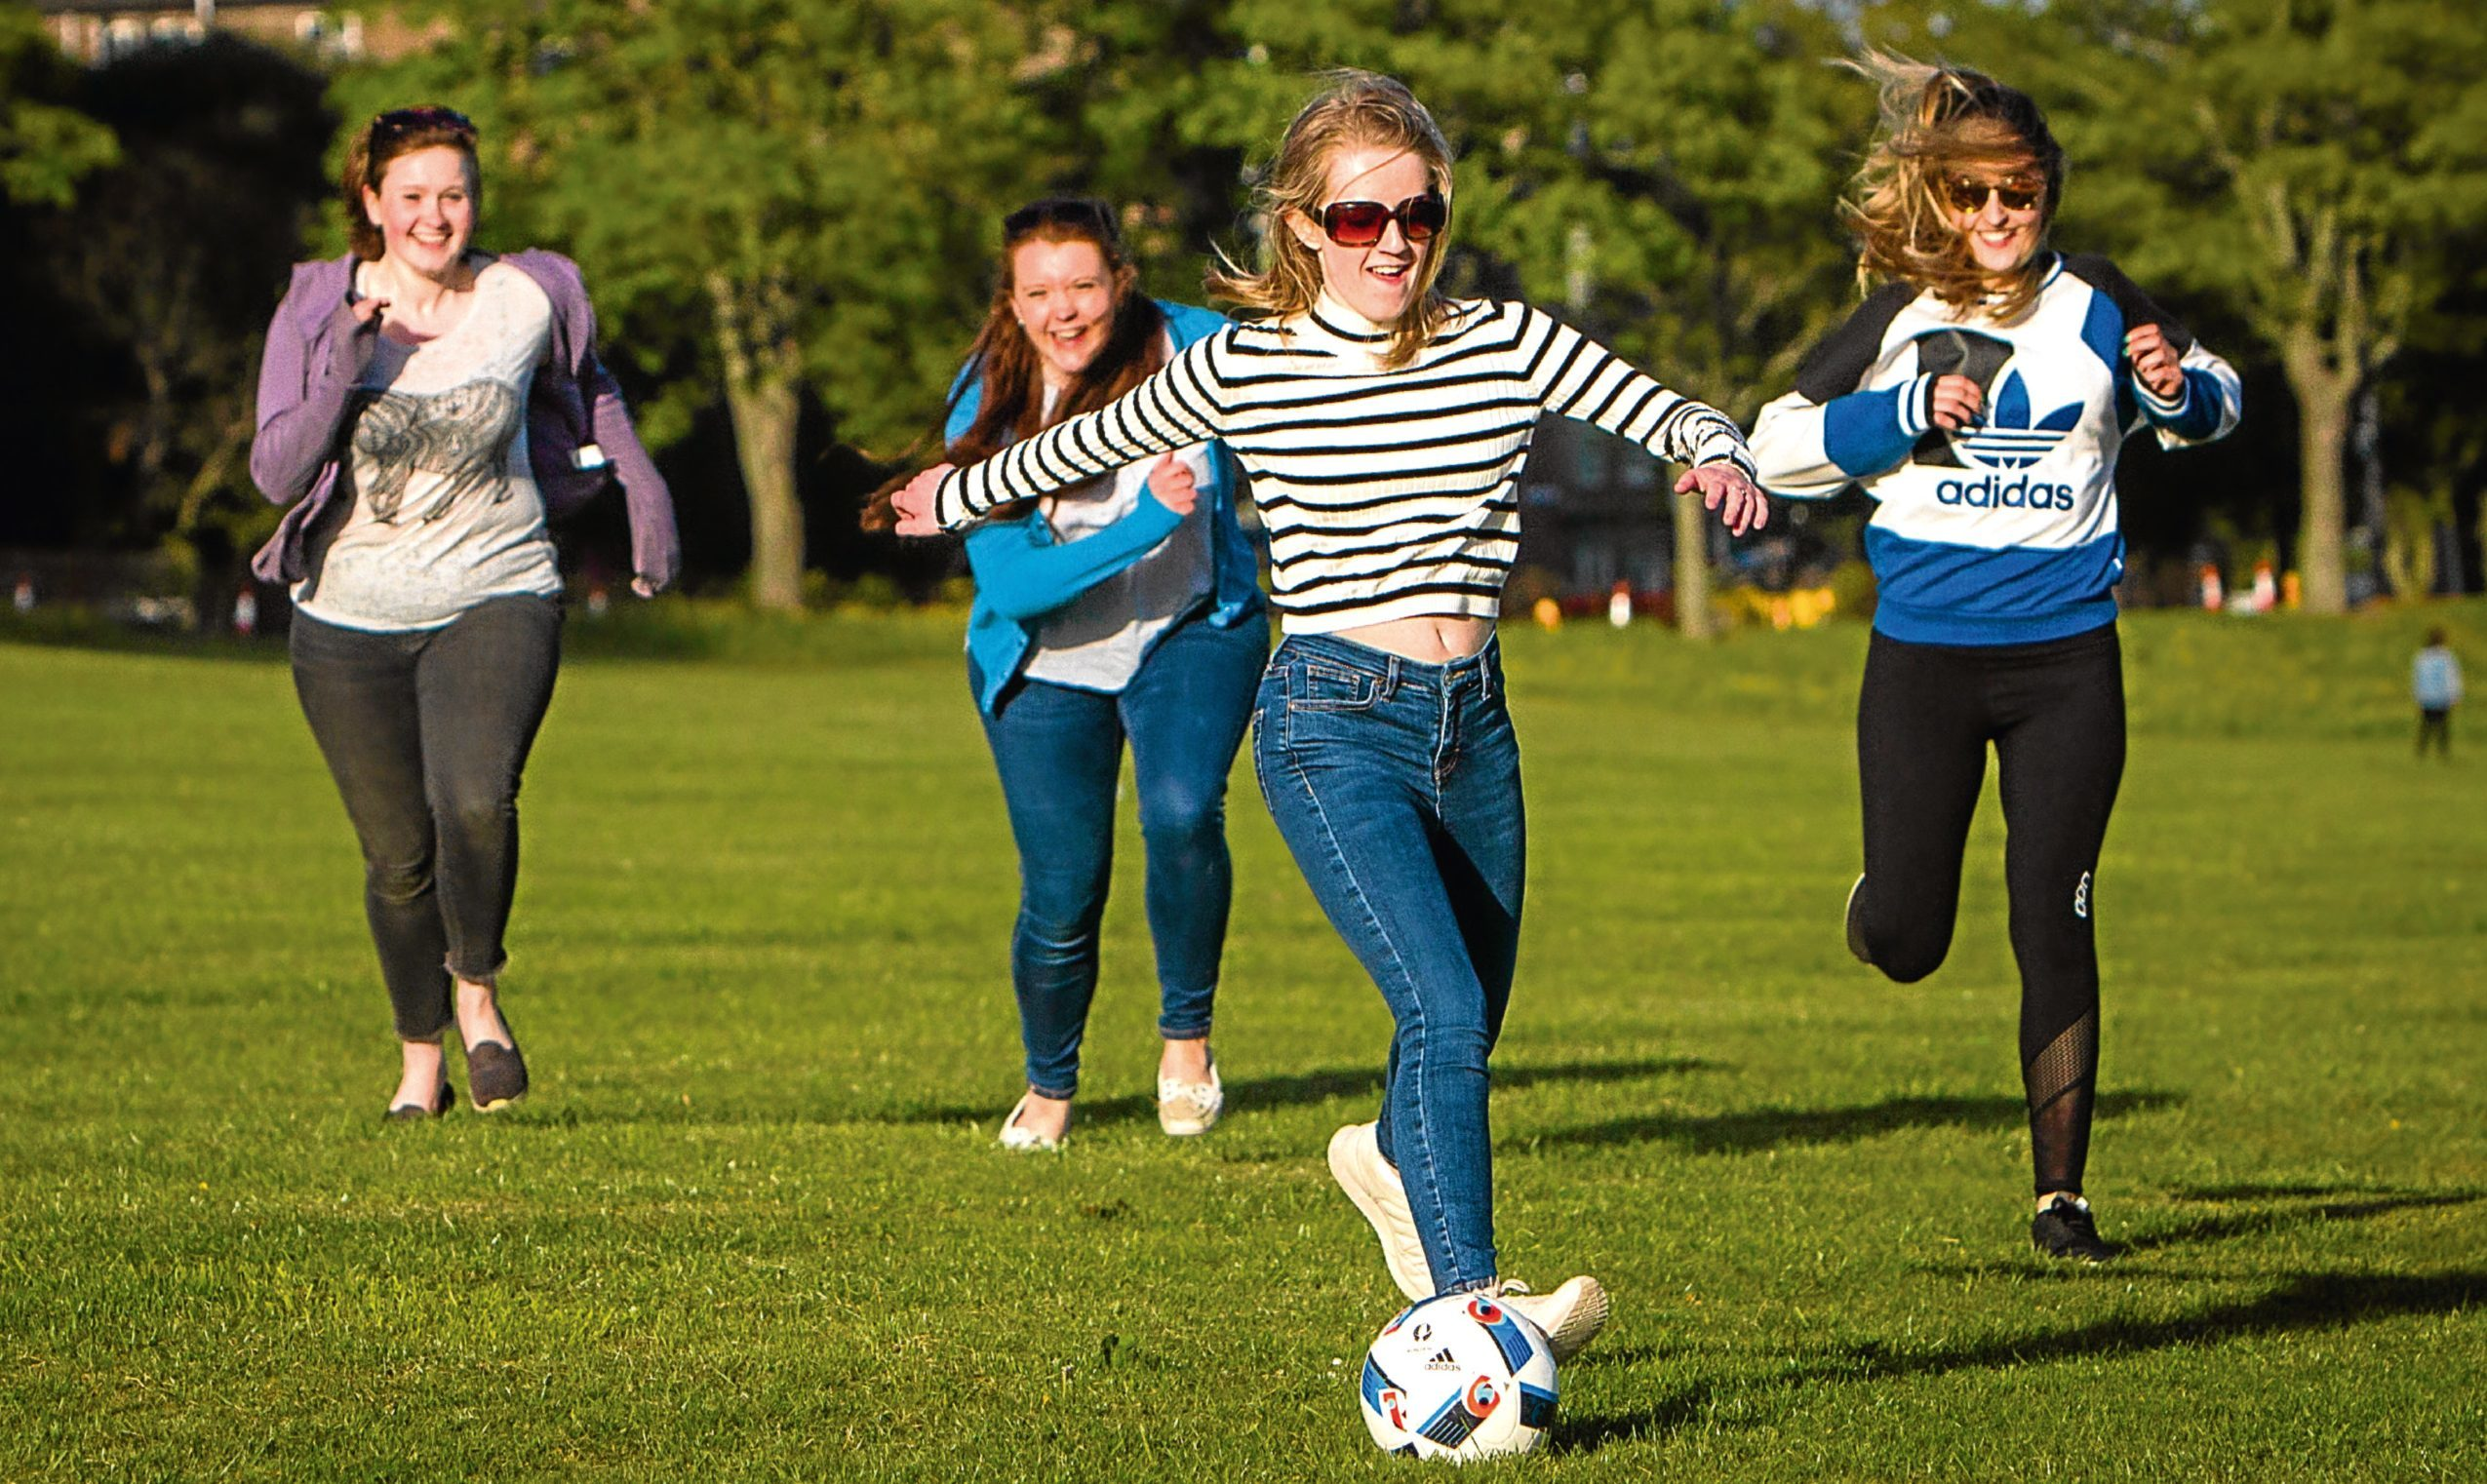 Students from University of Dundee let off steam in Magdalen Green. At the front is Rachael Logan and back (left to right) is Emily Kerr, Elizabeth Heywood and Kathryn Brice